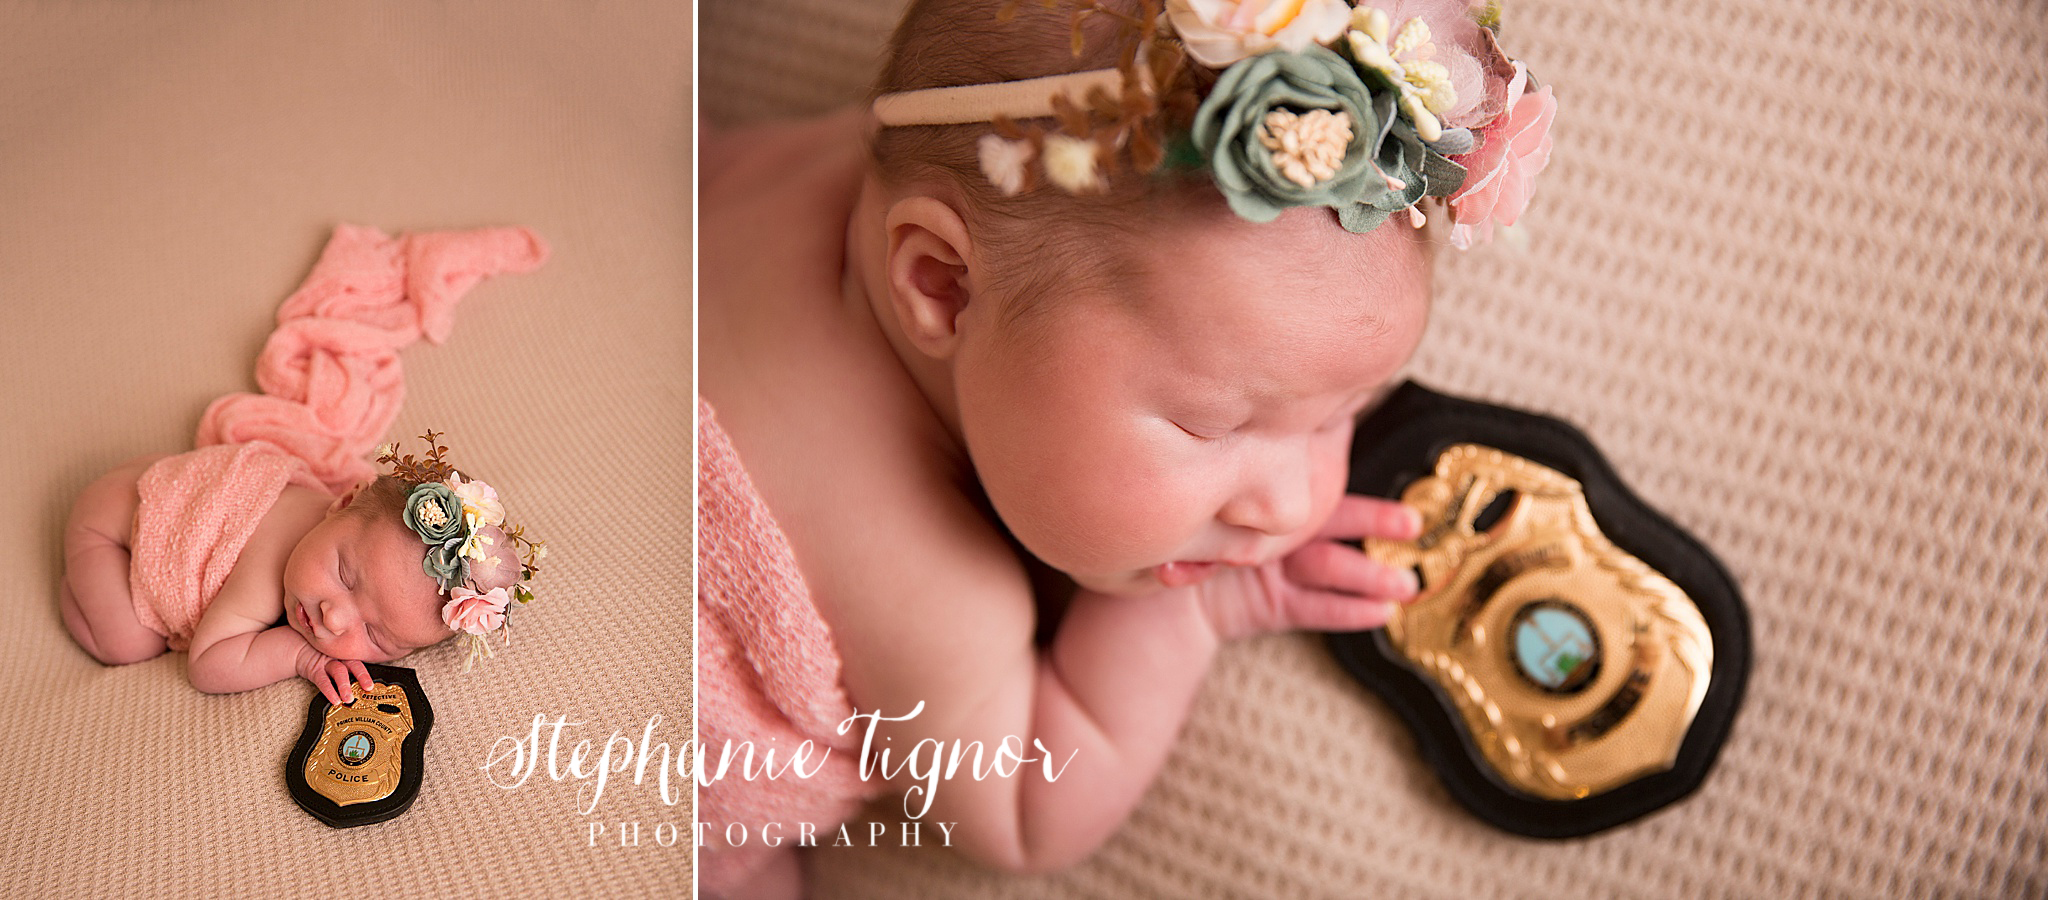 Stephanie Tignor Photography | Fredericksburg VA Newborn Photographer | Warrenton VA Newborn Photographer | Stafford VA Newborn Photographer | Newborn Photographer | Fairfax VA Newborn Photographer | Spotsylvania VA Newborn Photographer | Virginia Newborn Photographer, boho newborn session, floral newborn session, newborn portraits